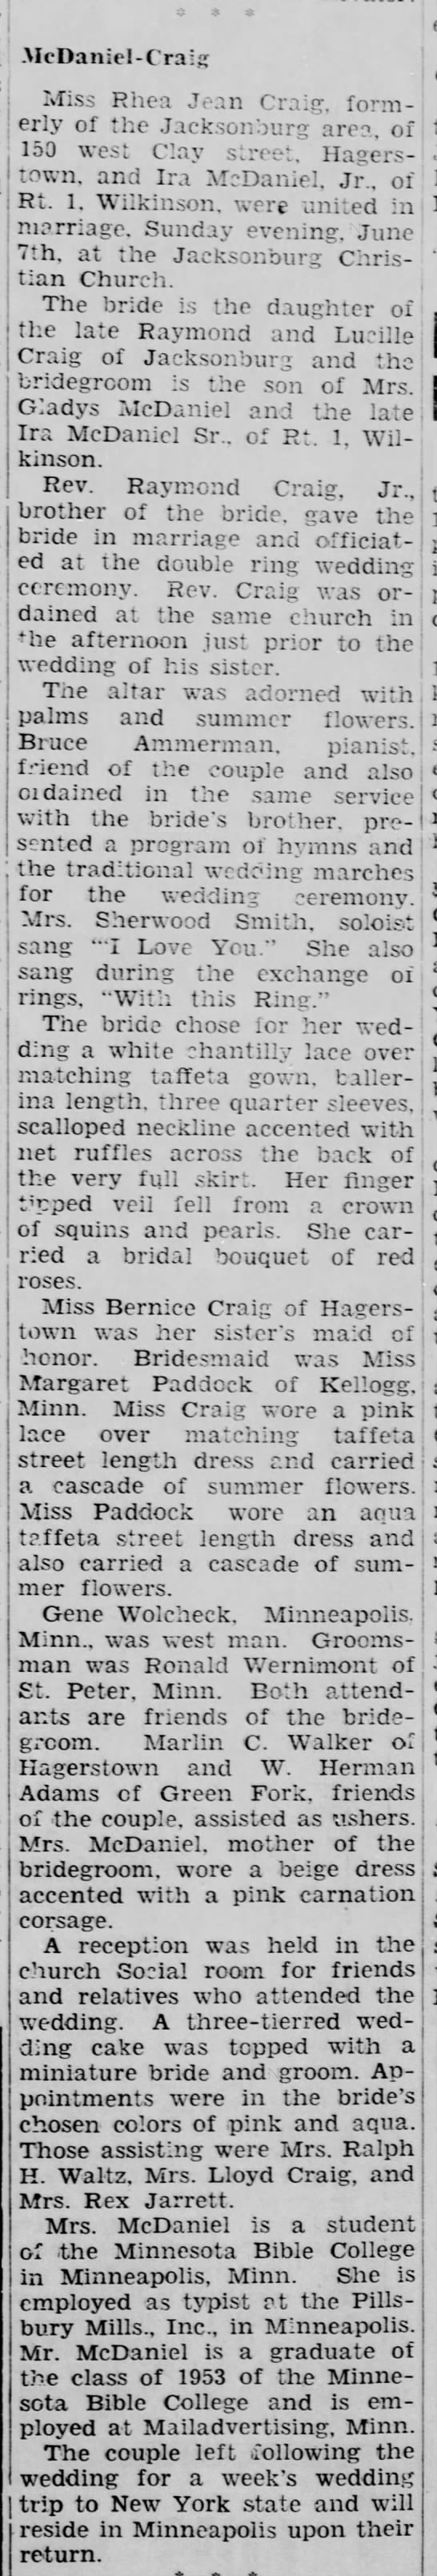 The Daily Reporter (Greenfield, IN), 15 June 1959 -